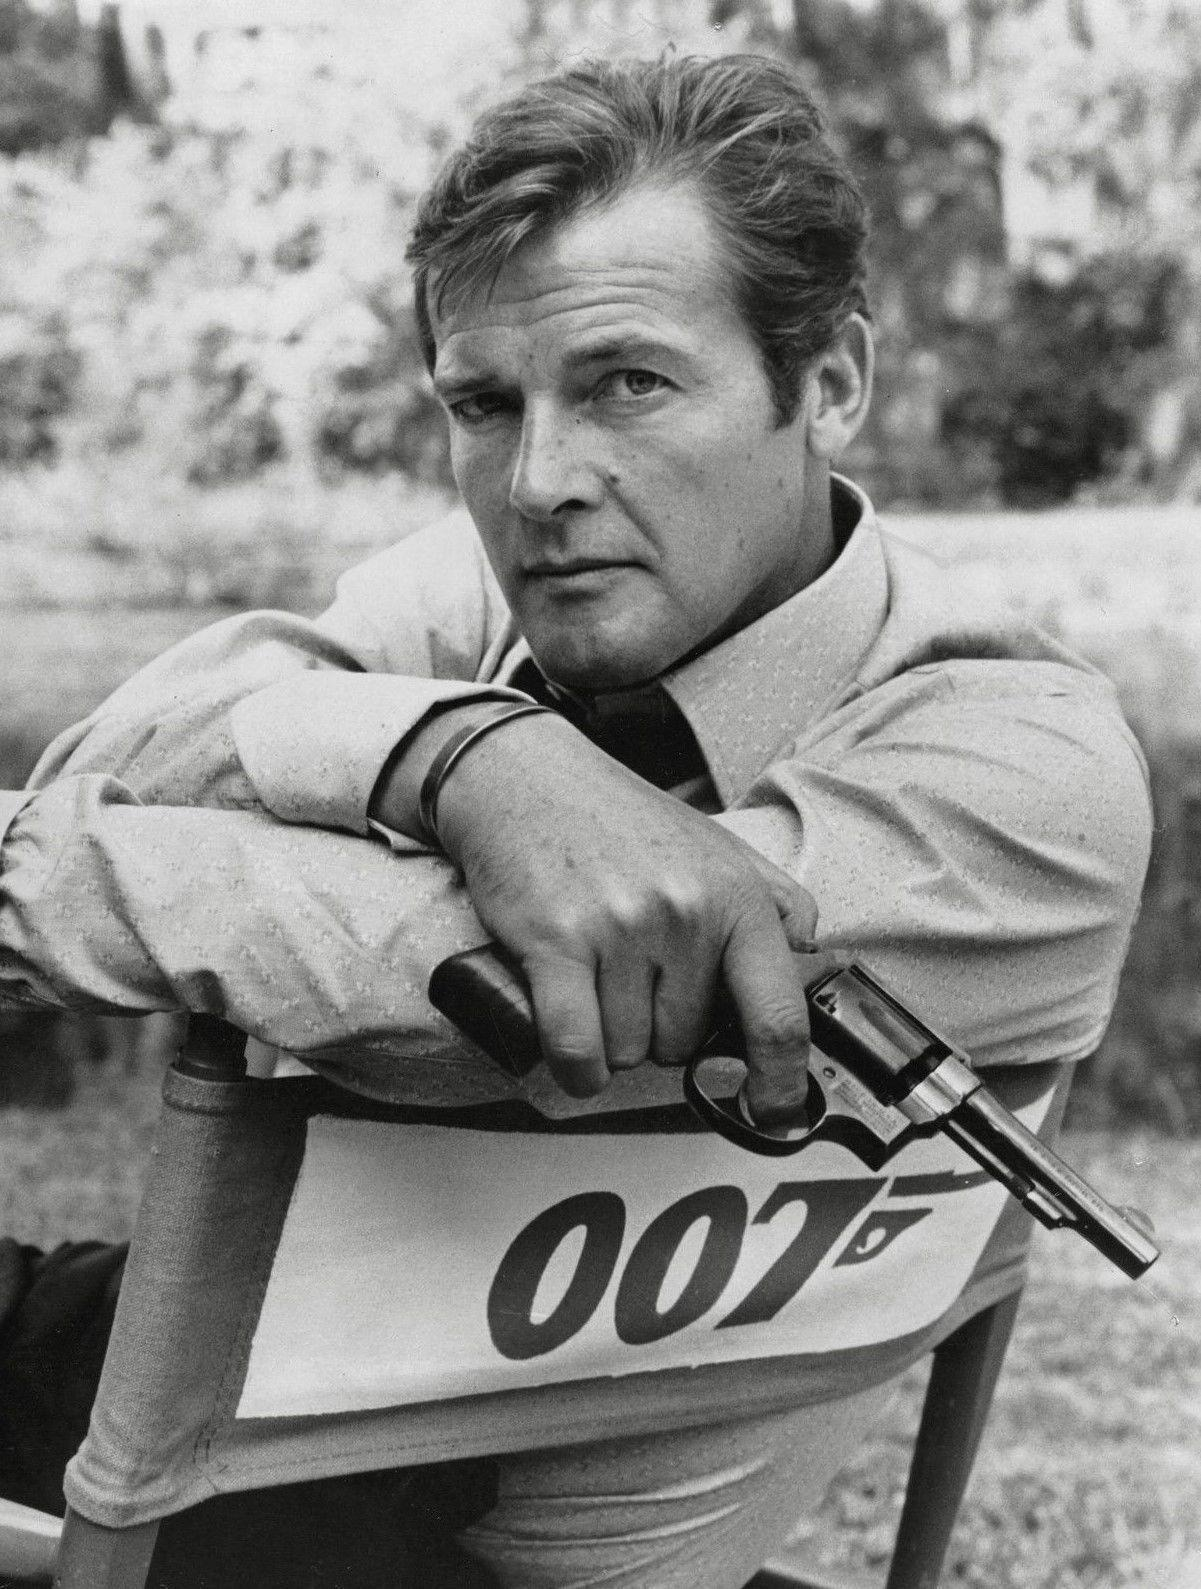 2019 roger moore 007 james bond art silk print poster 24x36inch60x90cm 012 from chuy8988 10 93 dhgate com